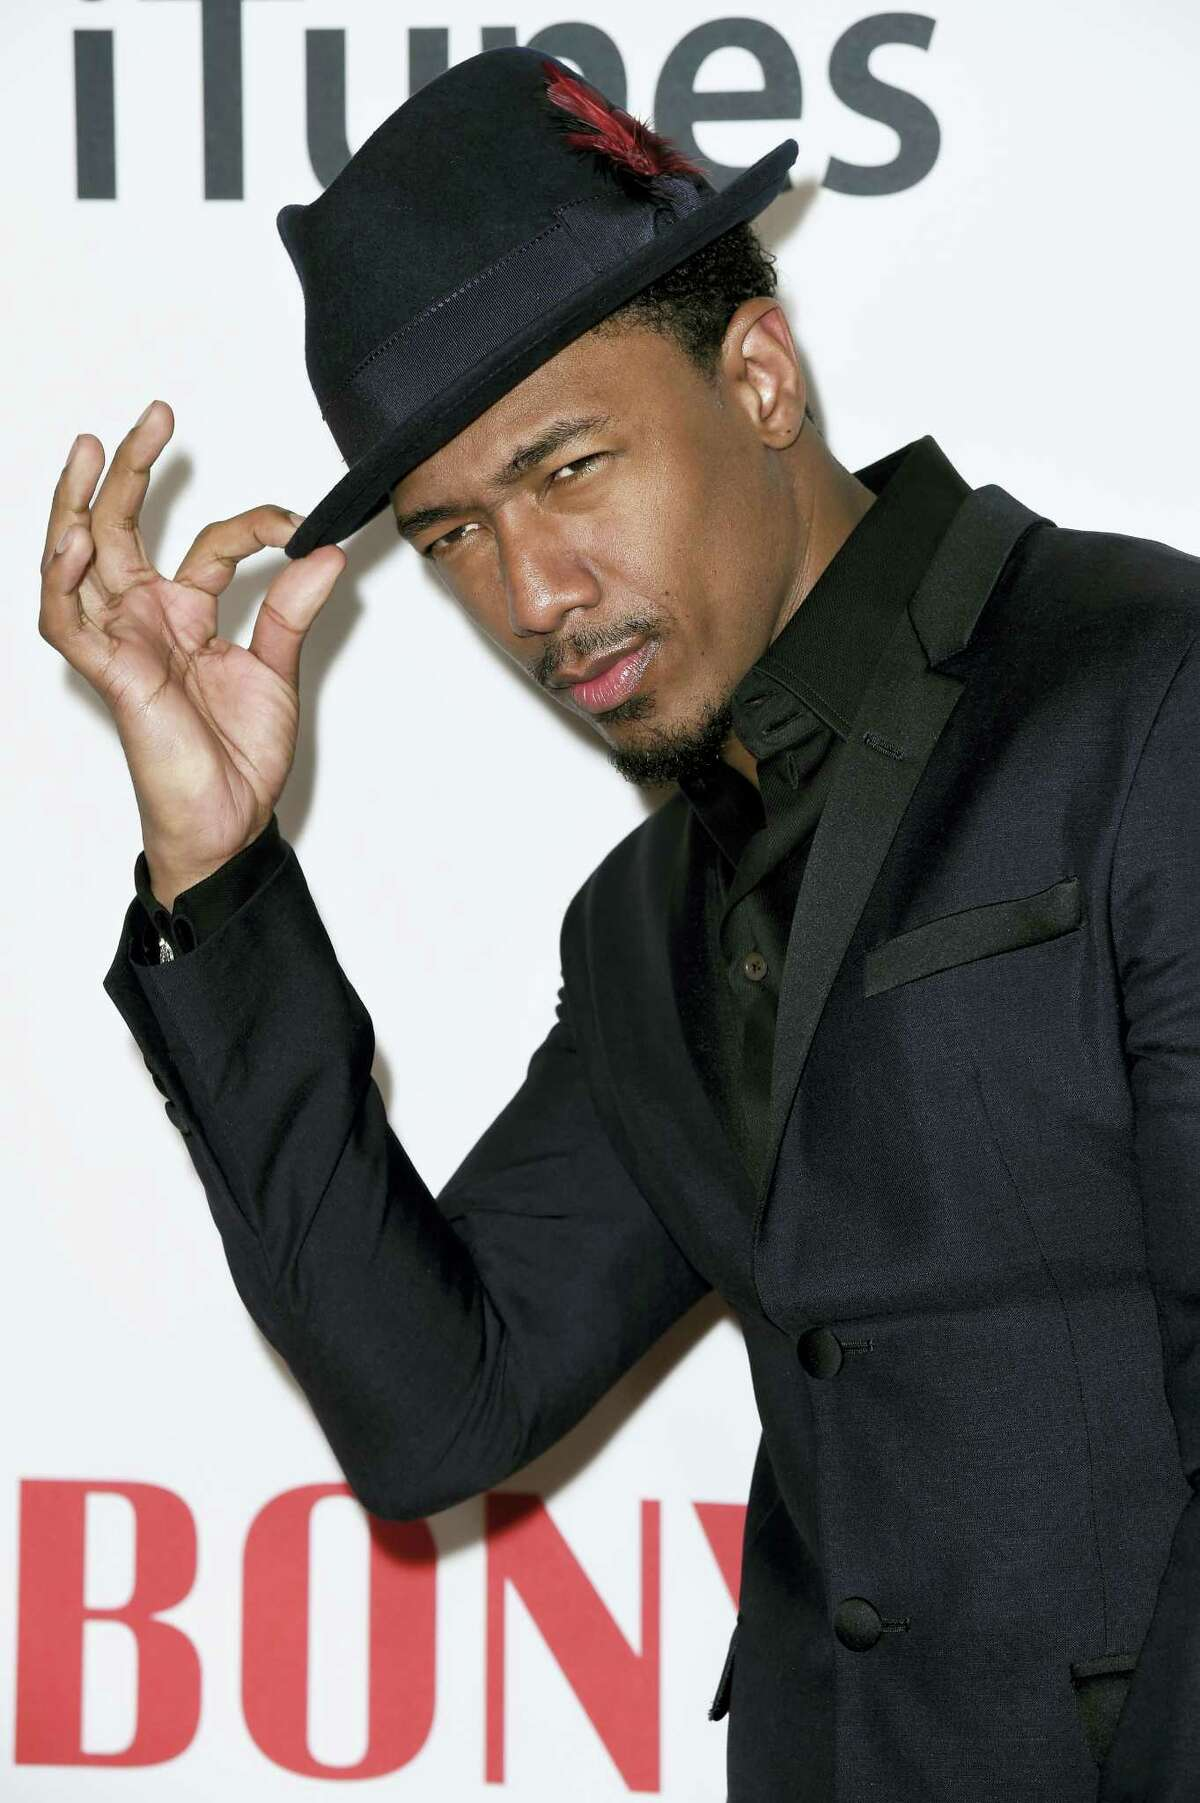 Nick Cannon attends Ebony Magazine and Apple Celebrate Black Hollywood held at Neuehouse Hollywood on Feb. 27, 2016, in Los Angeles.